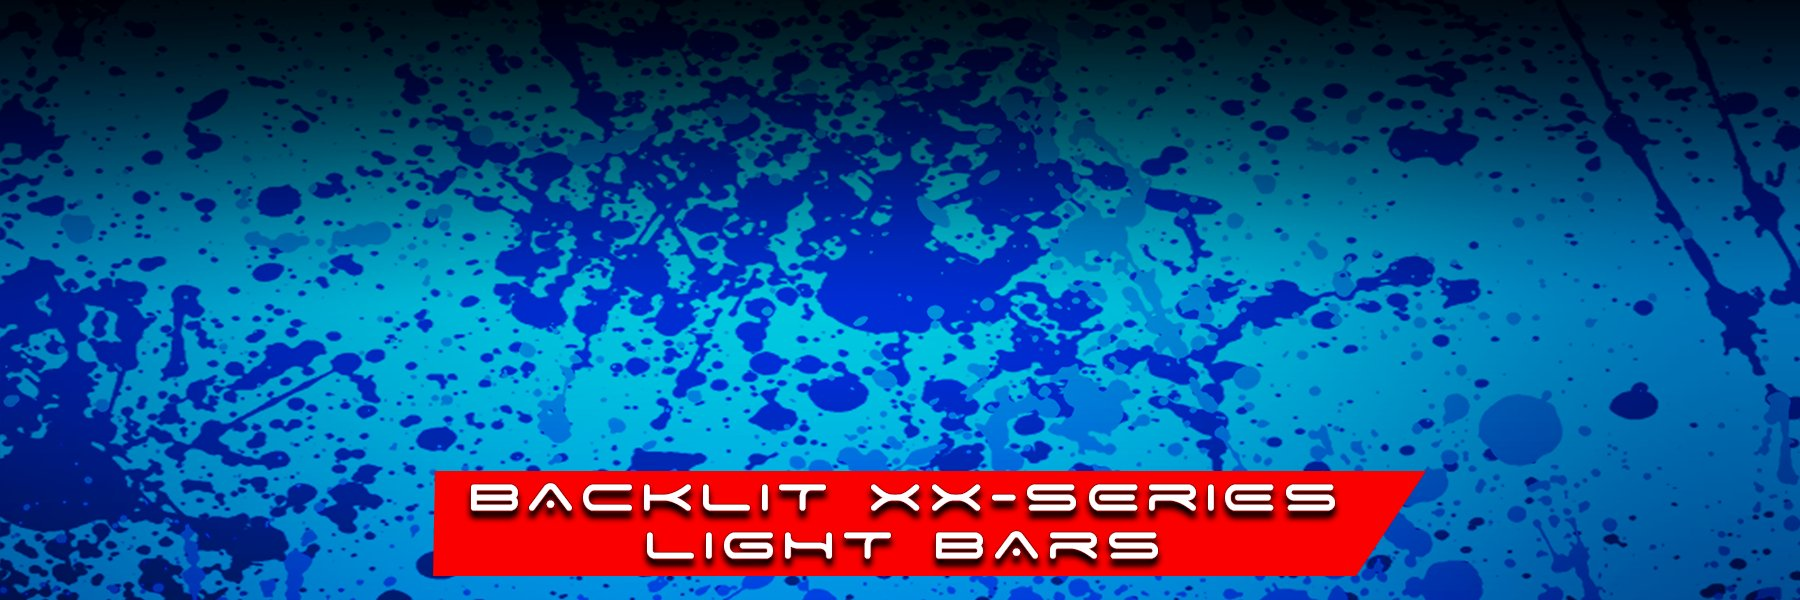 BACK LIT XX-SERIES LIGHT BARS